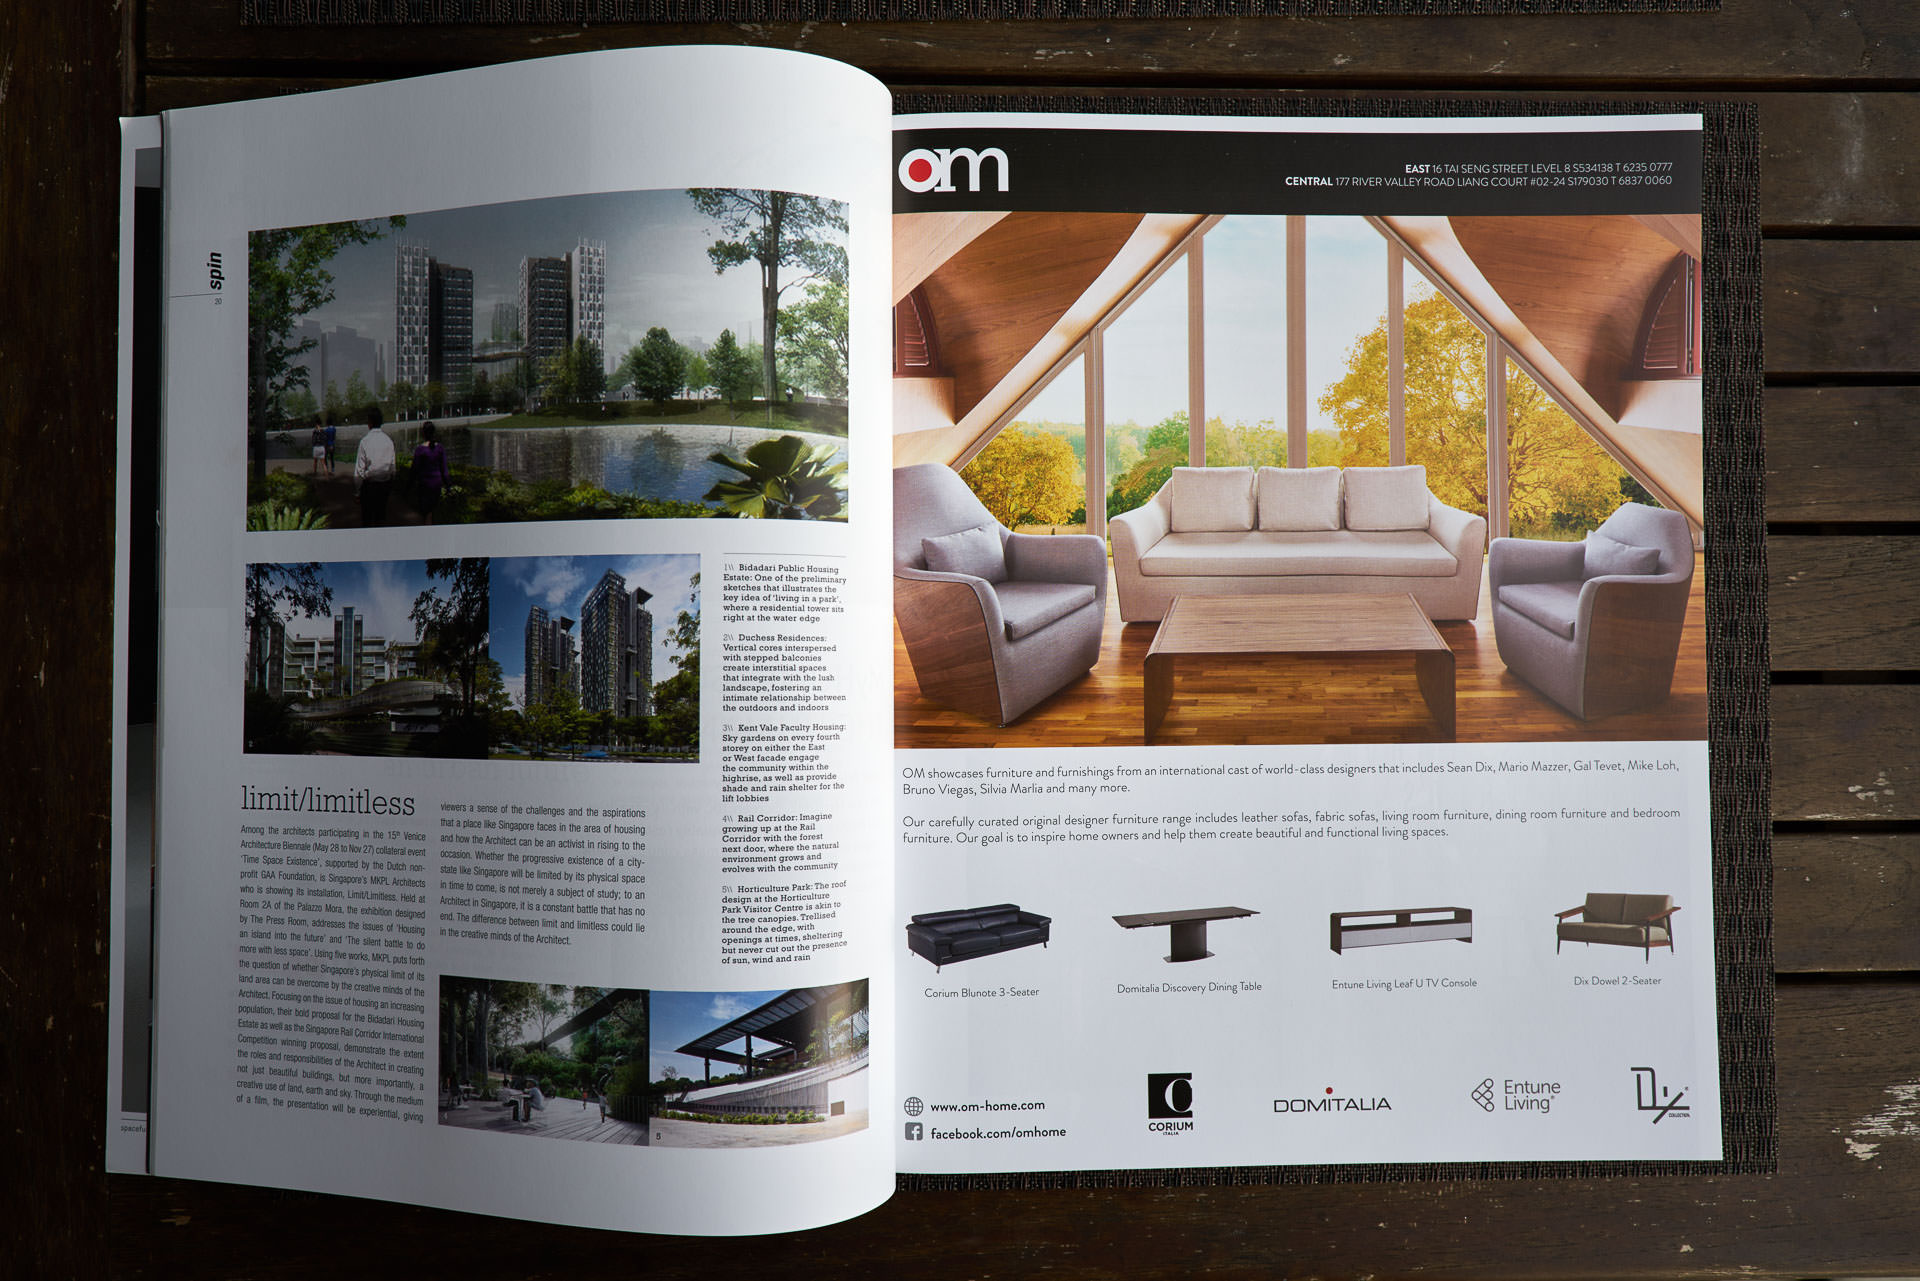 design and architecture magazine issue 92 showing om homes advertisement with image by christopher o - Design Architecture Magazine